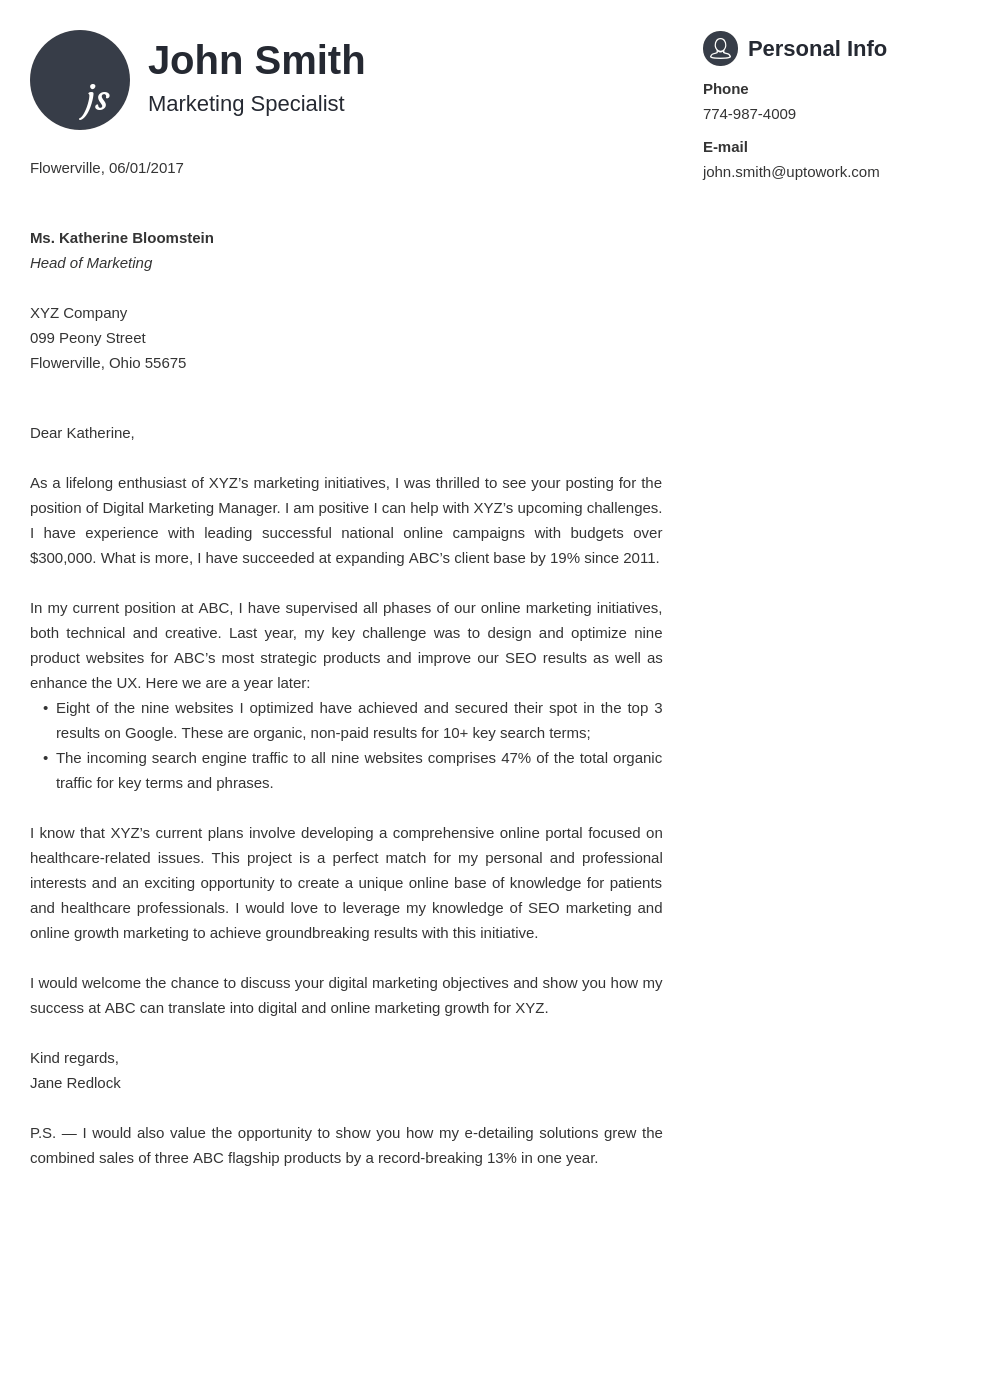 20 cover letter templates  download  create your cover